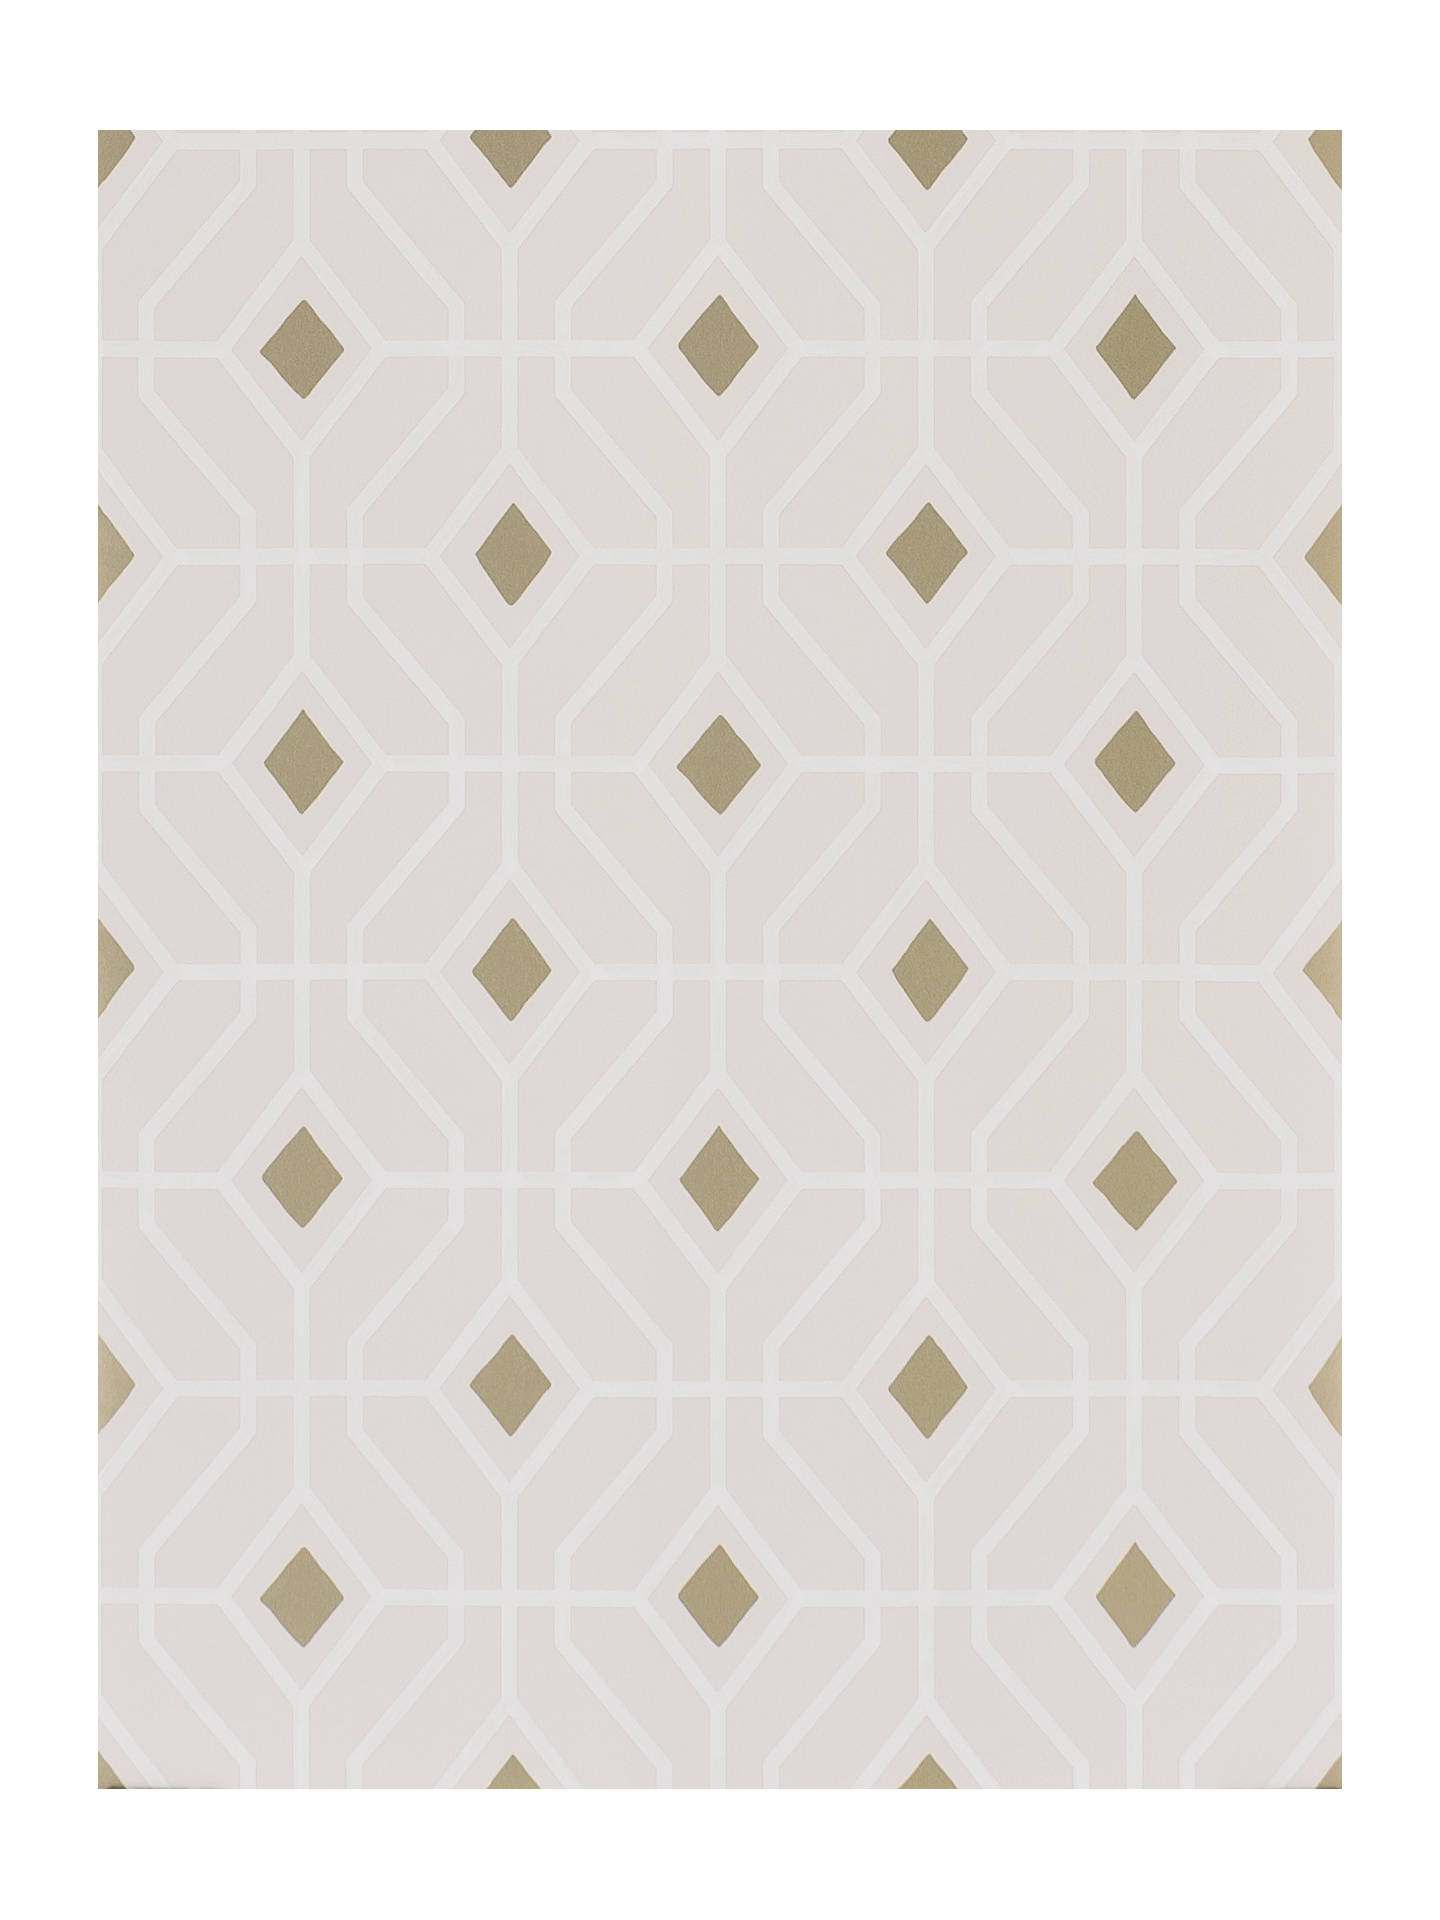 Buy Designers Guild Laterza Wallpaper, PDG1026/08 Online at johnlewis.com